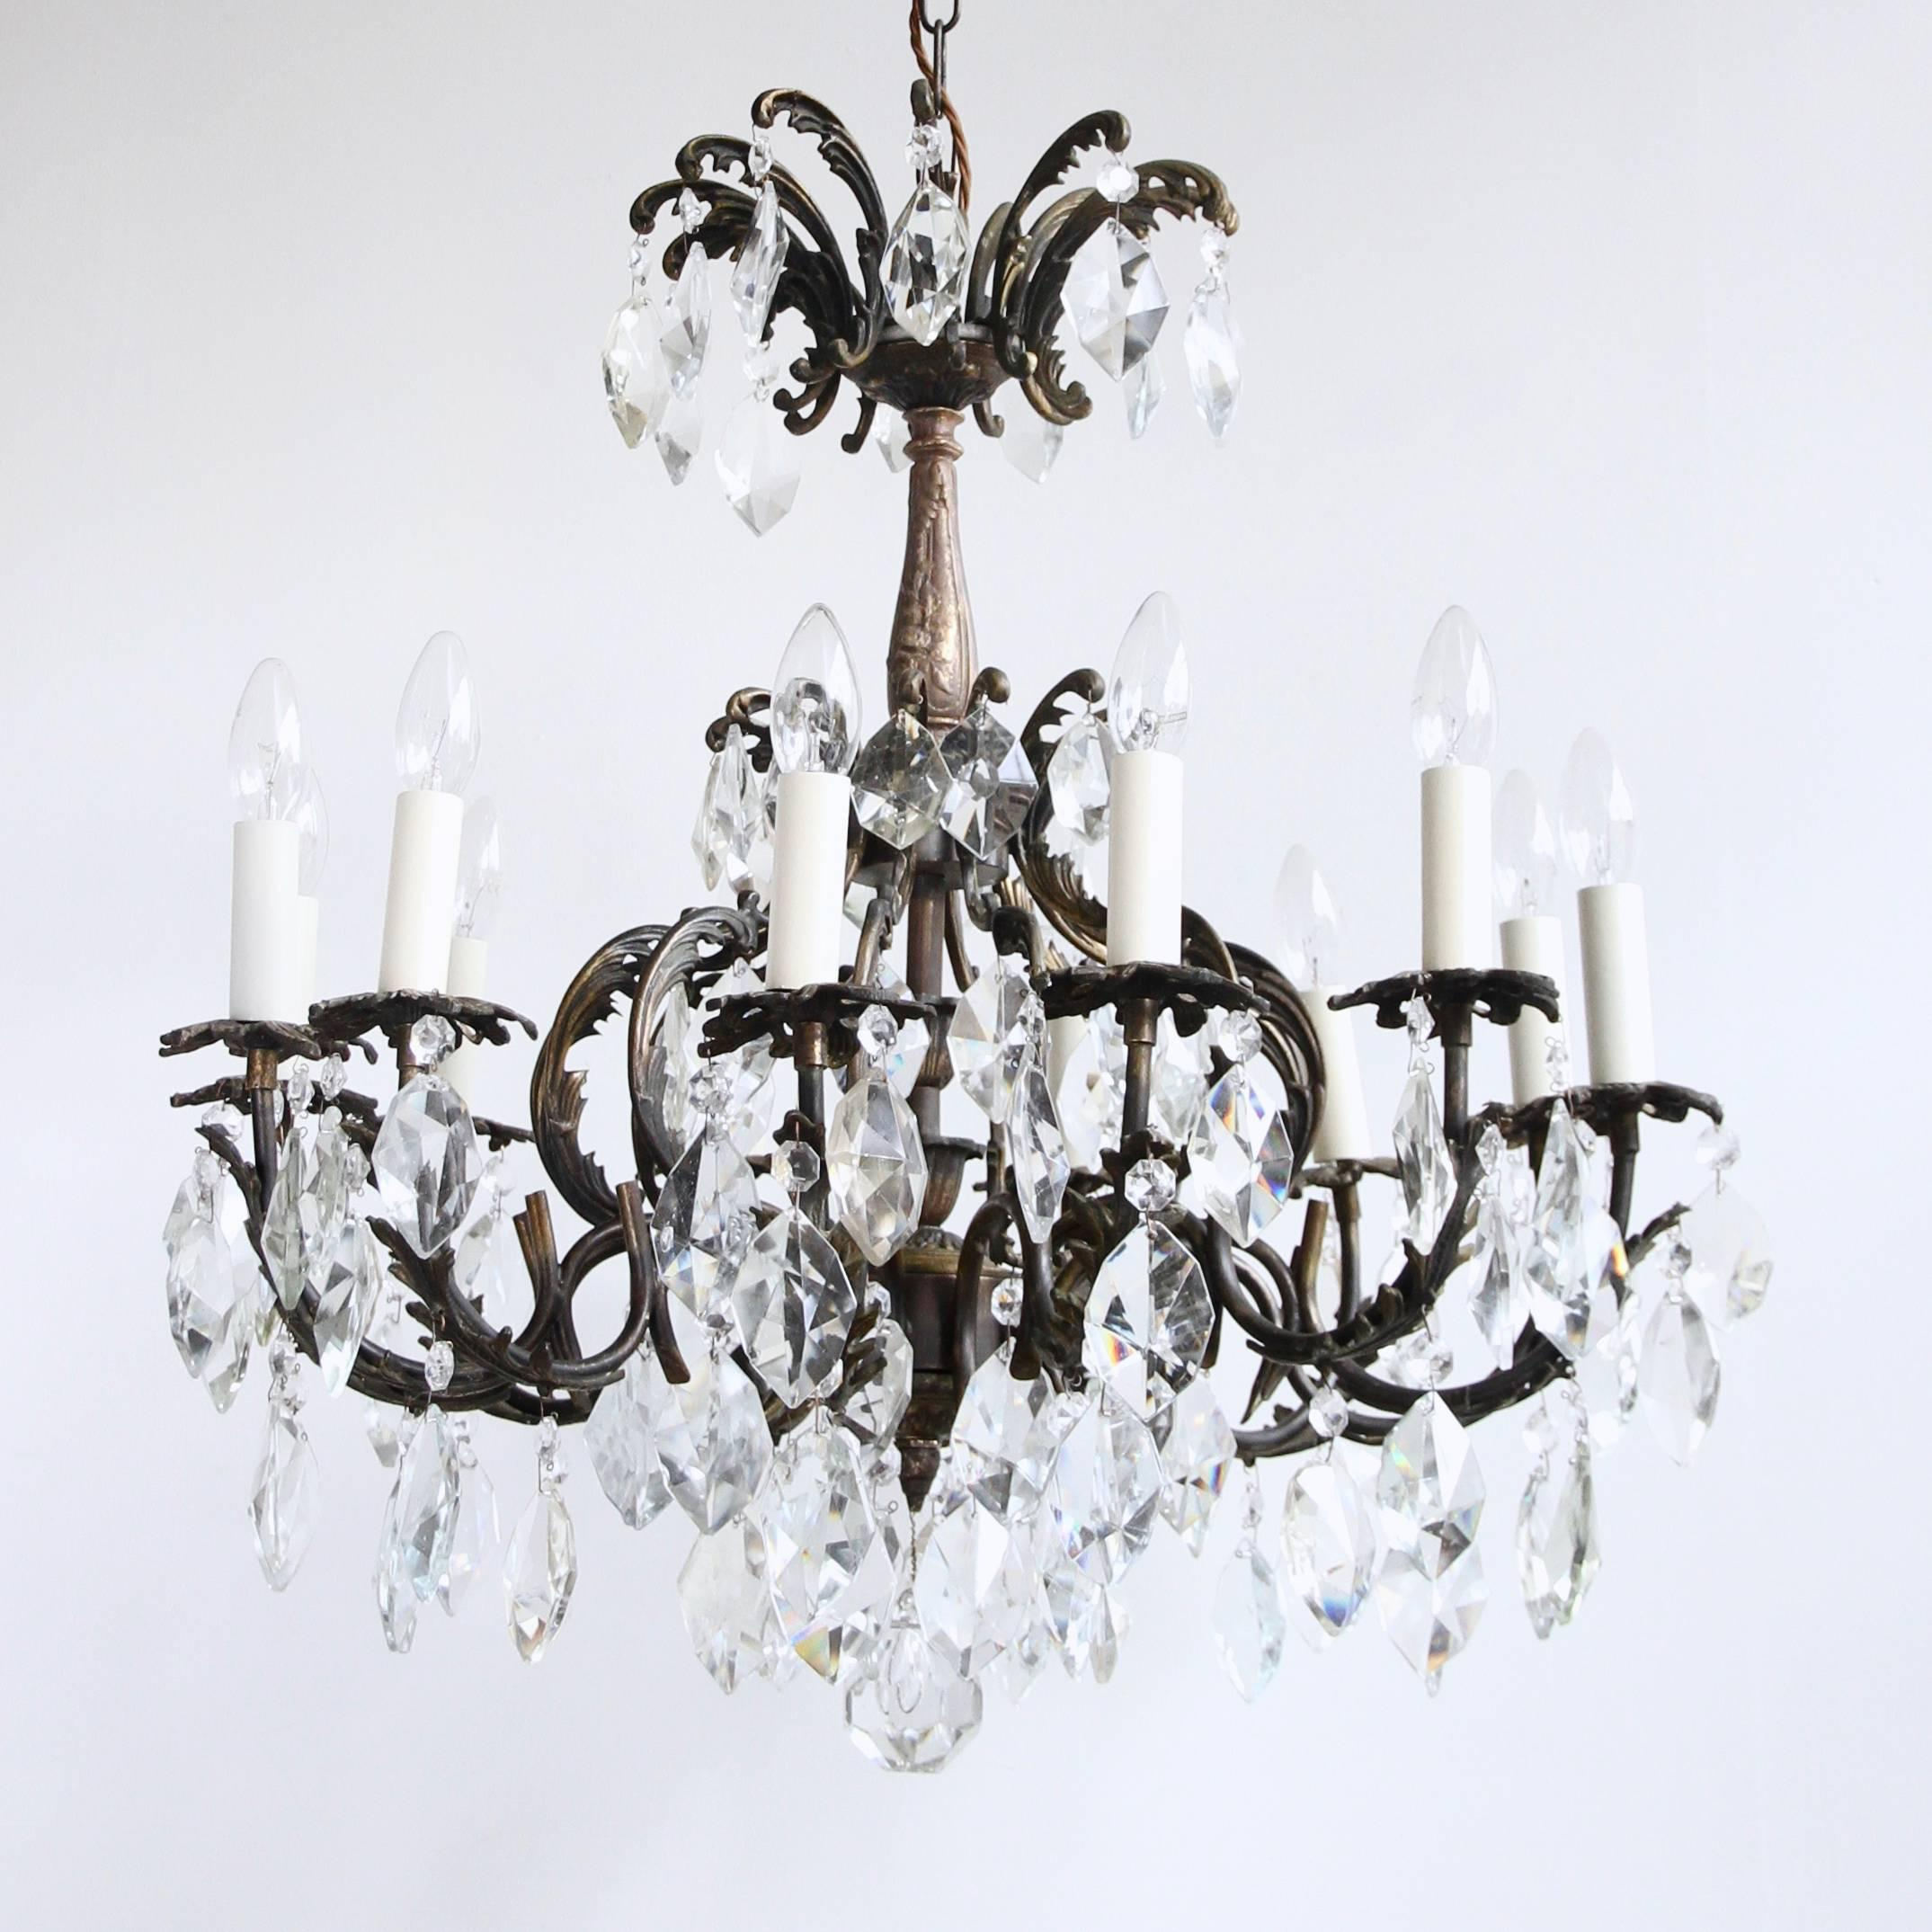 Early 1900s french ornate brass chandelier with cut crystal iceberg early 1900s french ornate brass chandelier with cut crystal iceberg drops at 1stdibs aloadofball Image collections